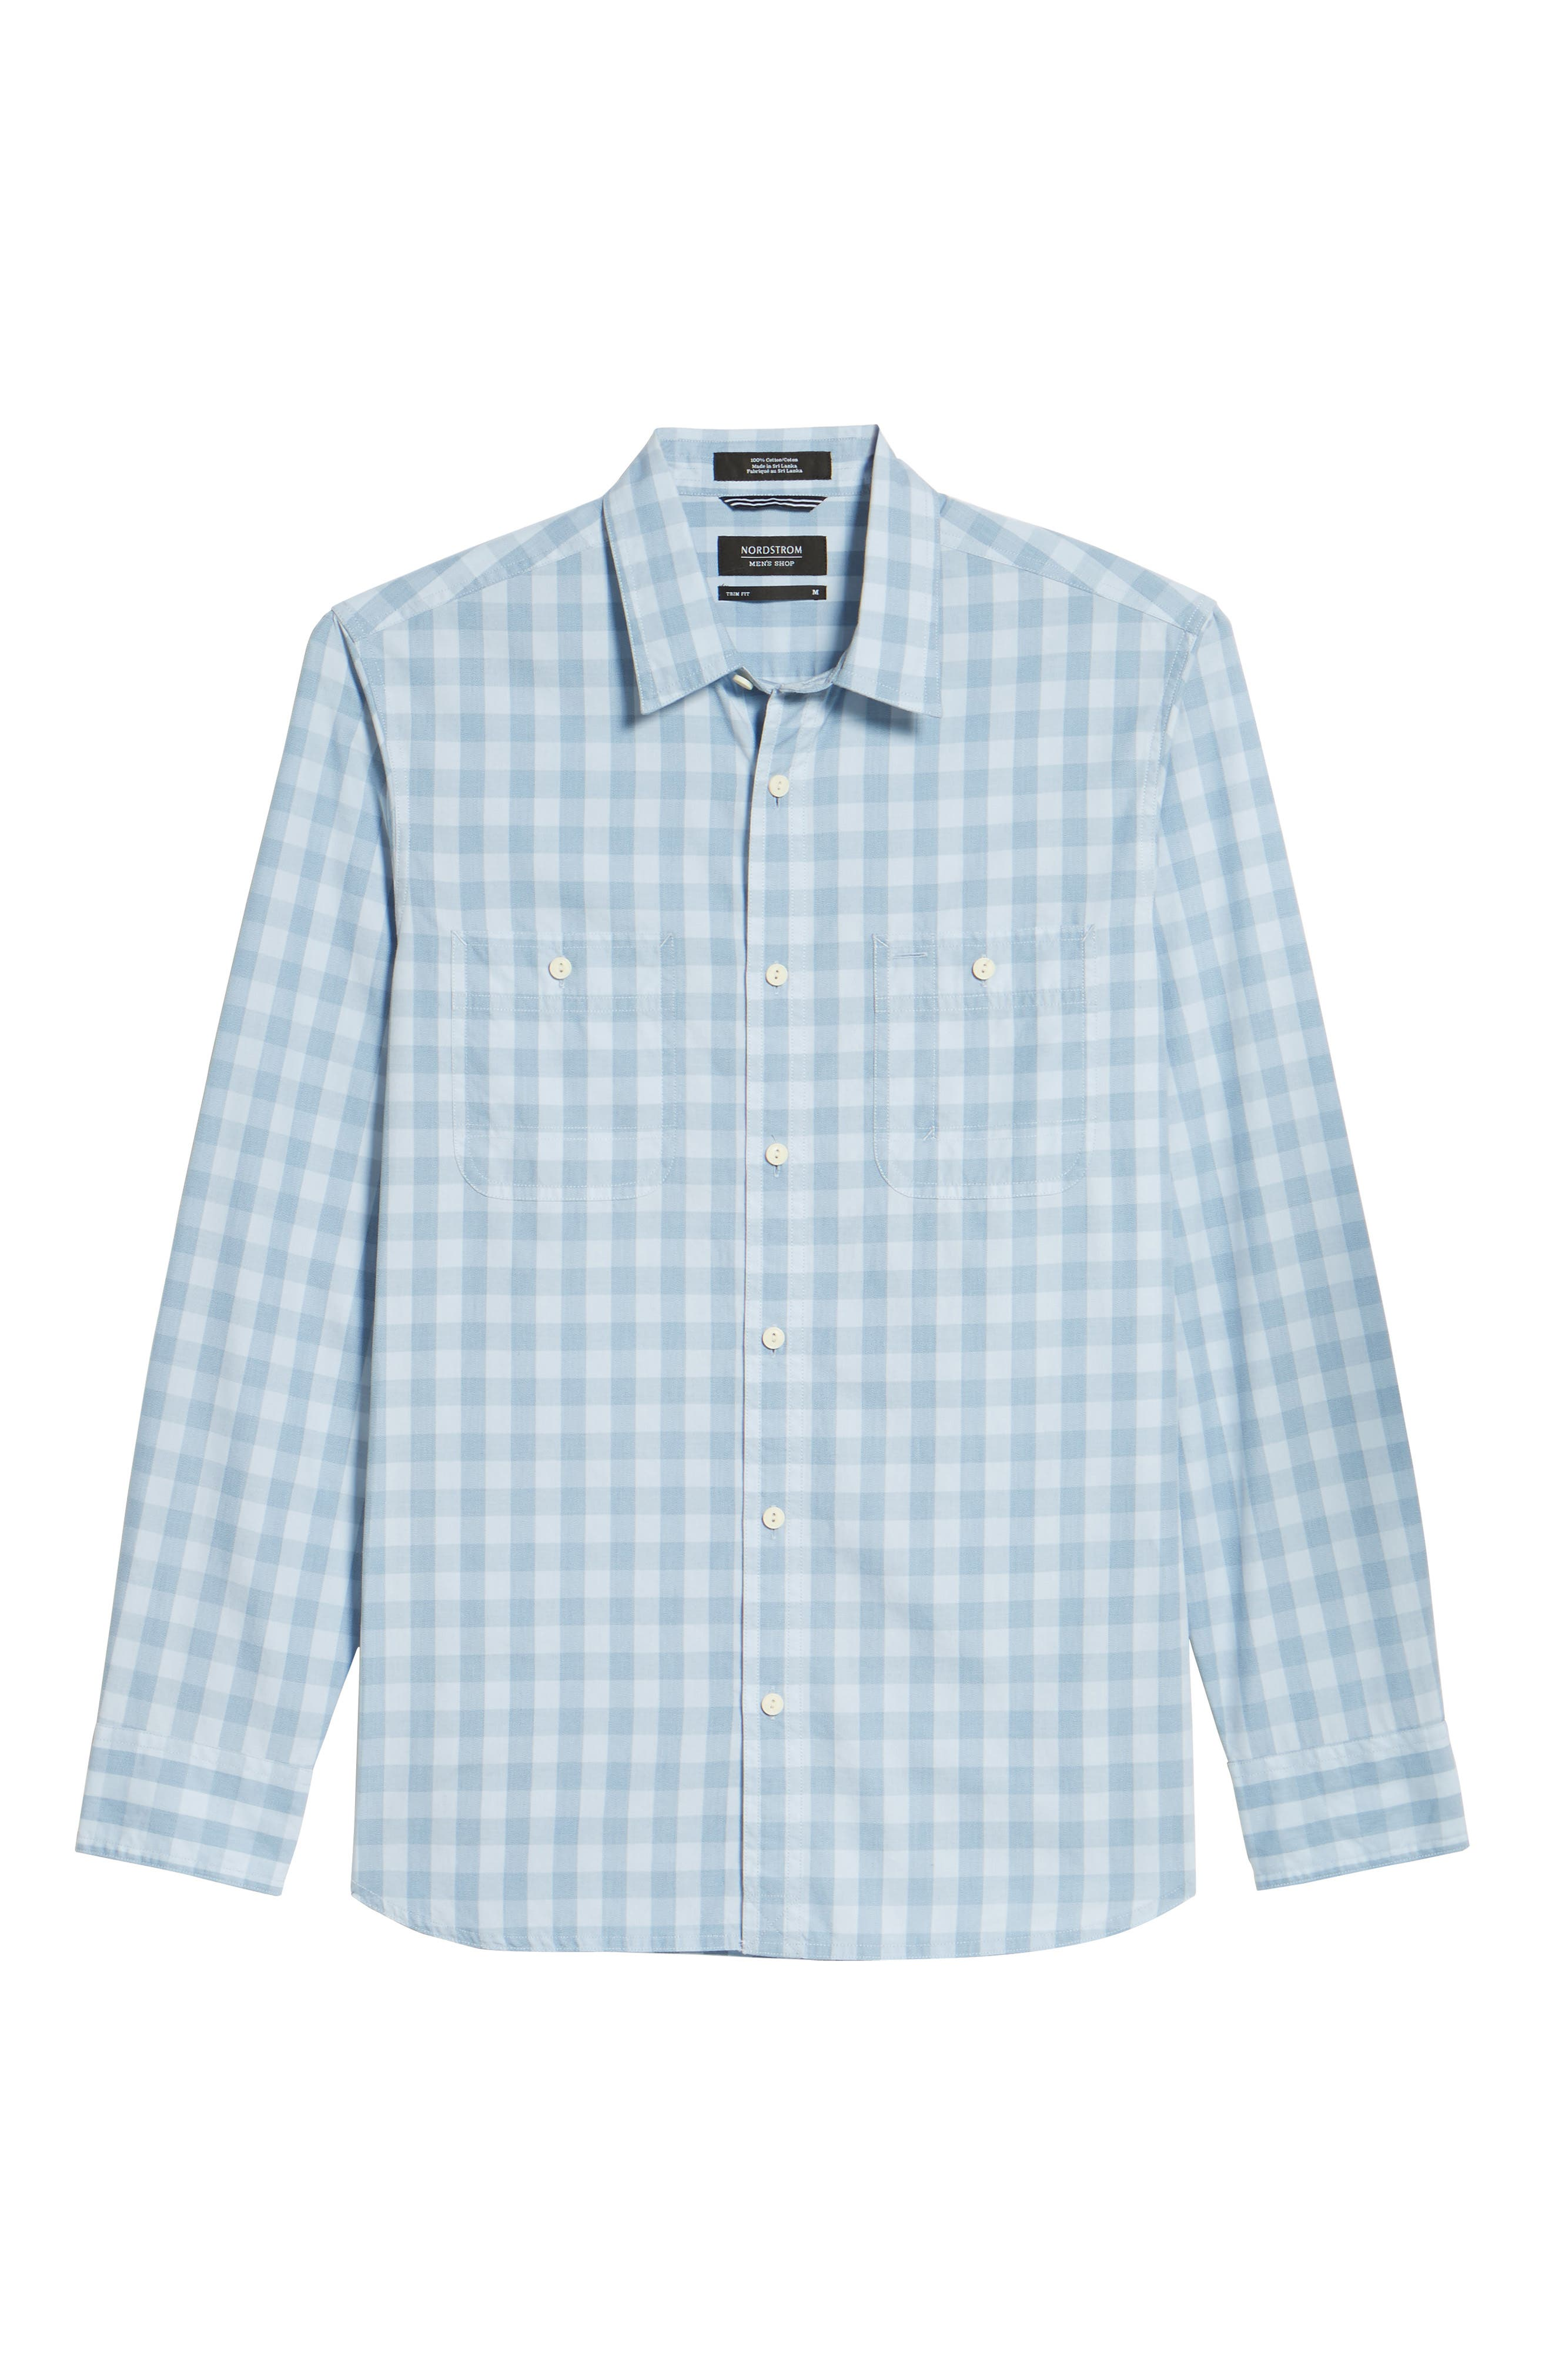 Trim Fit Washed Check Workwear Shirt,                             Alternate thumbnail 6, color,                             450